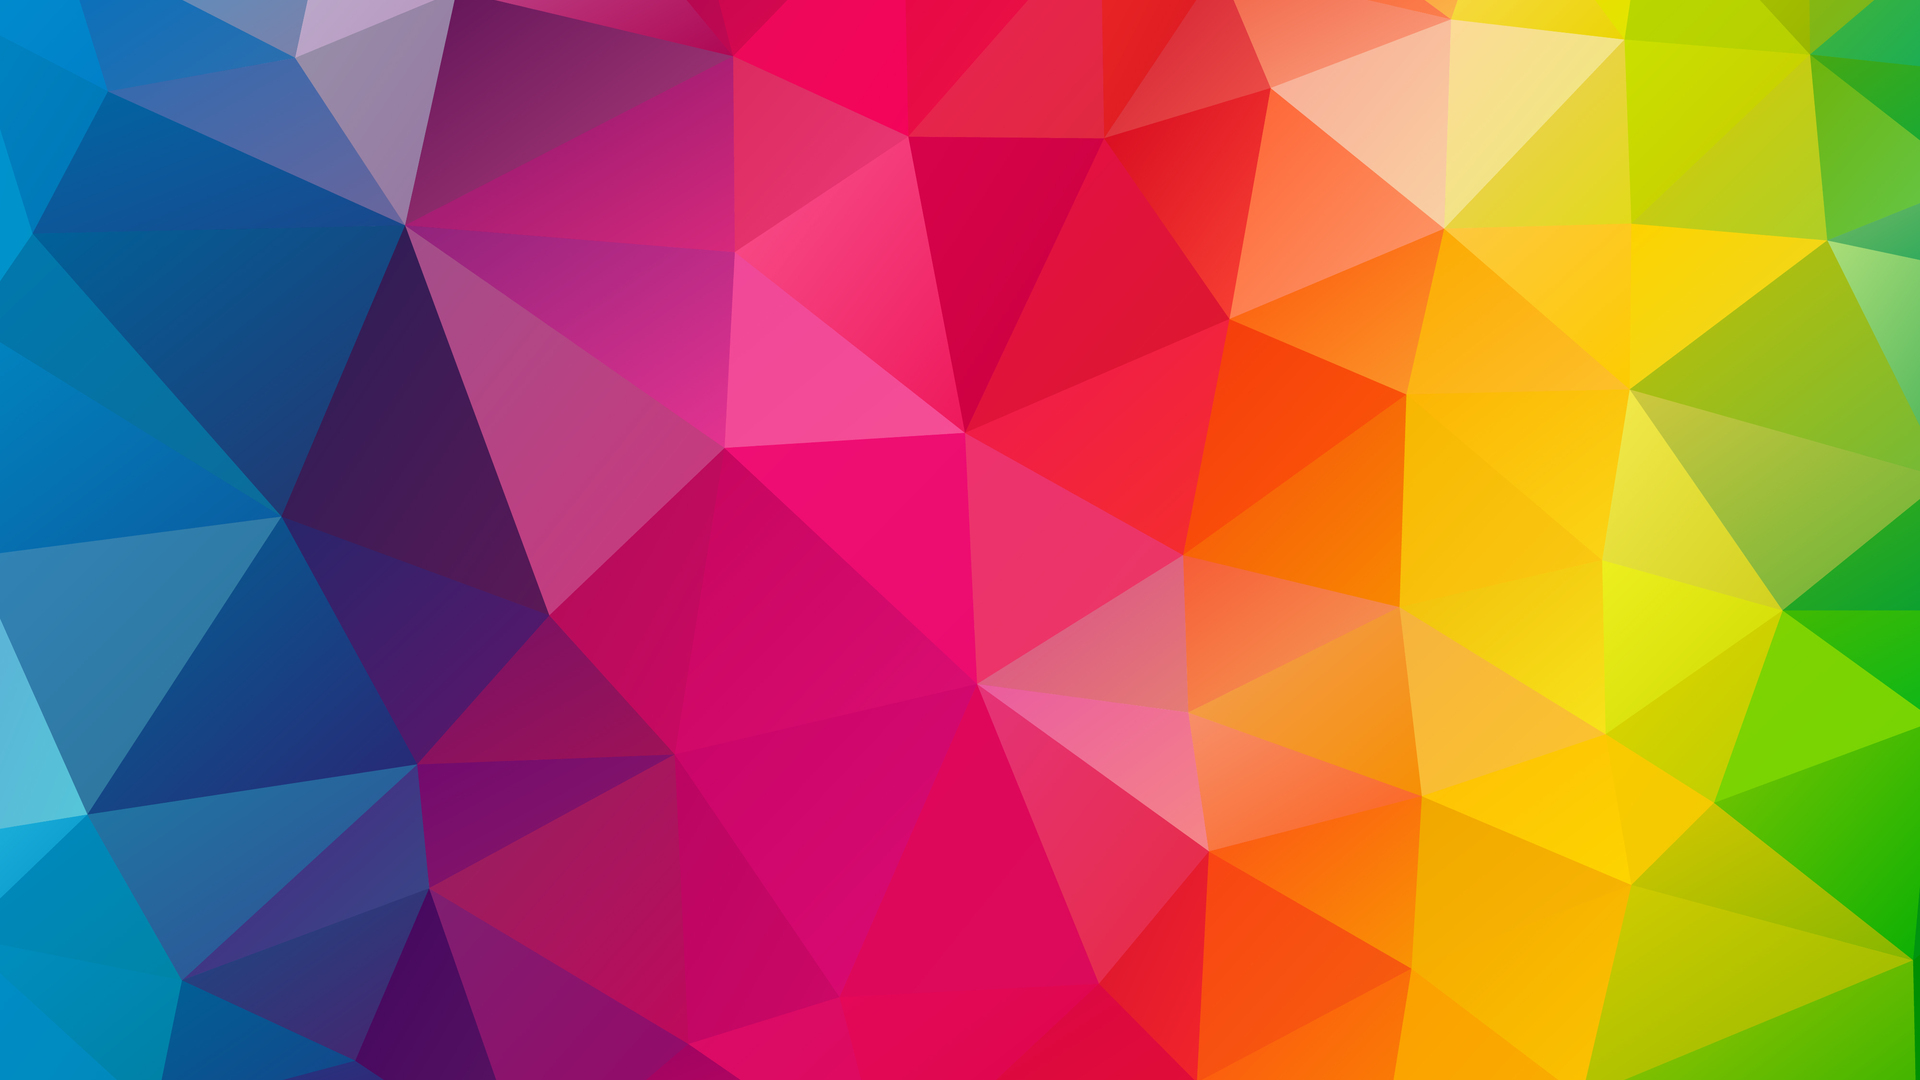 1920x1080 triangles colorful background laptop full hd 1080p hd 4k wallpapers images - Colorful background hd ...